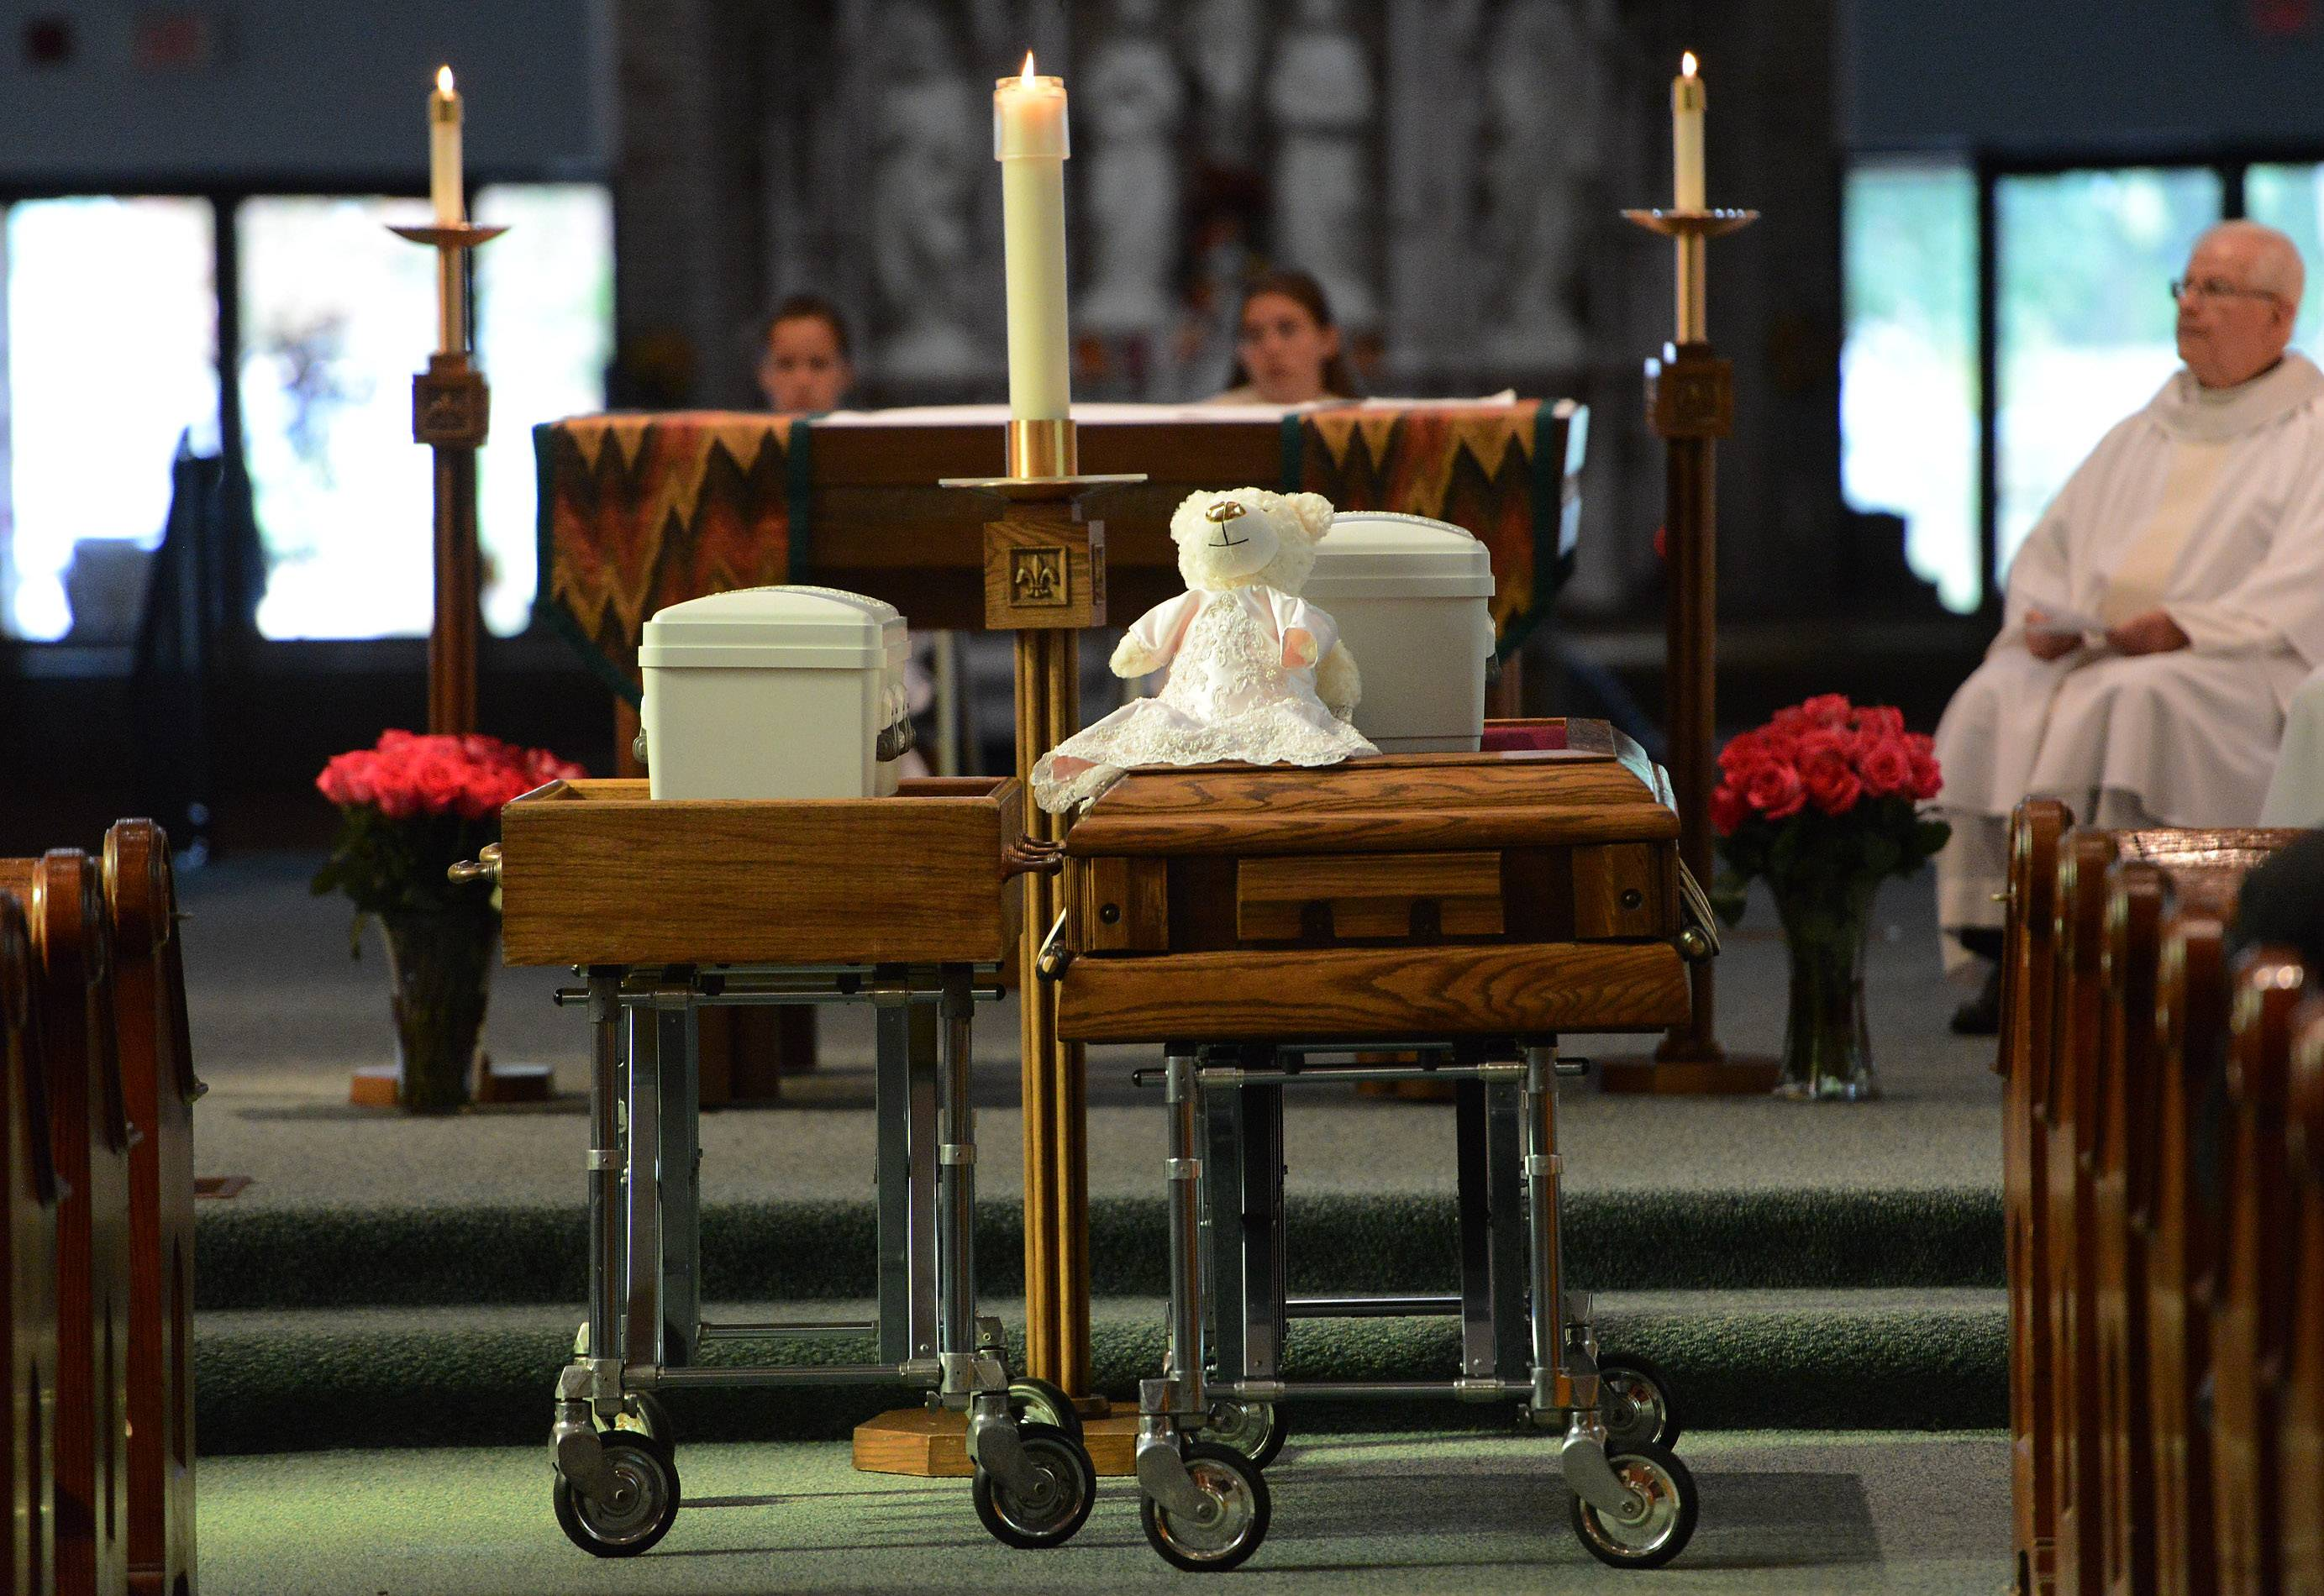 Abandoned babies Mariam Jane Uddin, left, and Ariyah Mikayla Hoover are eulogized during their funeral at St. Mary Church in Buffalo Grove.